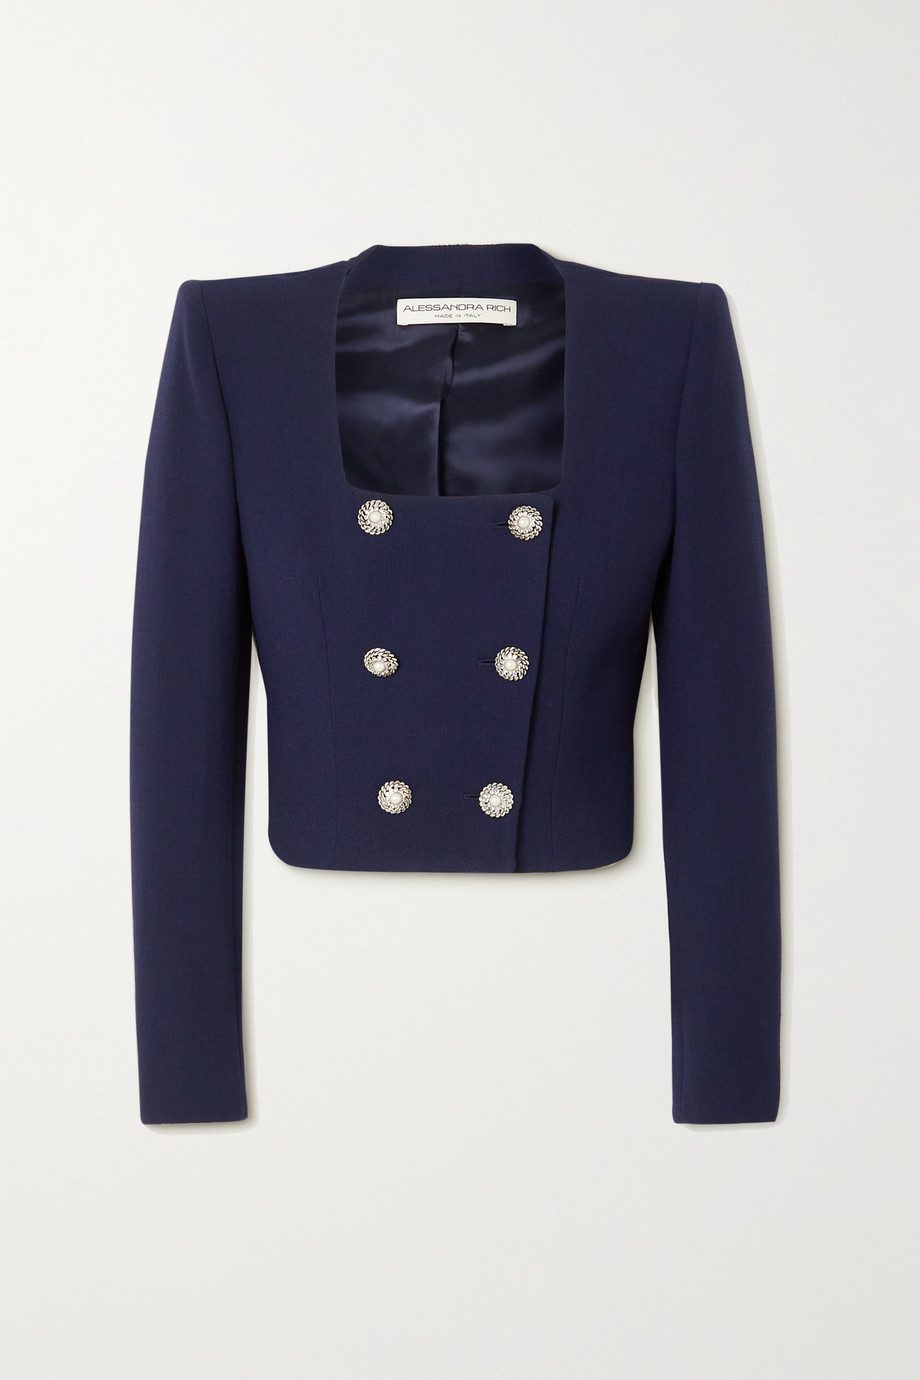 Alessandra Rich Crystal-embellished double-breasted wool-blend crepe jacket